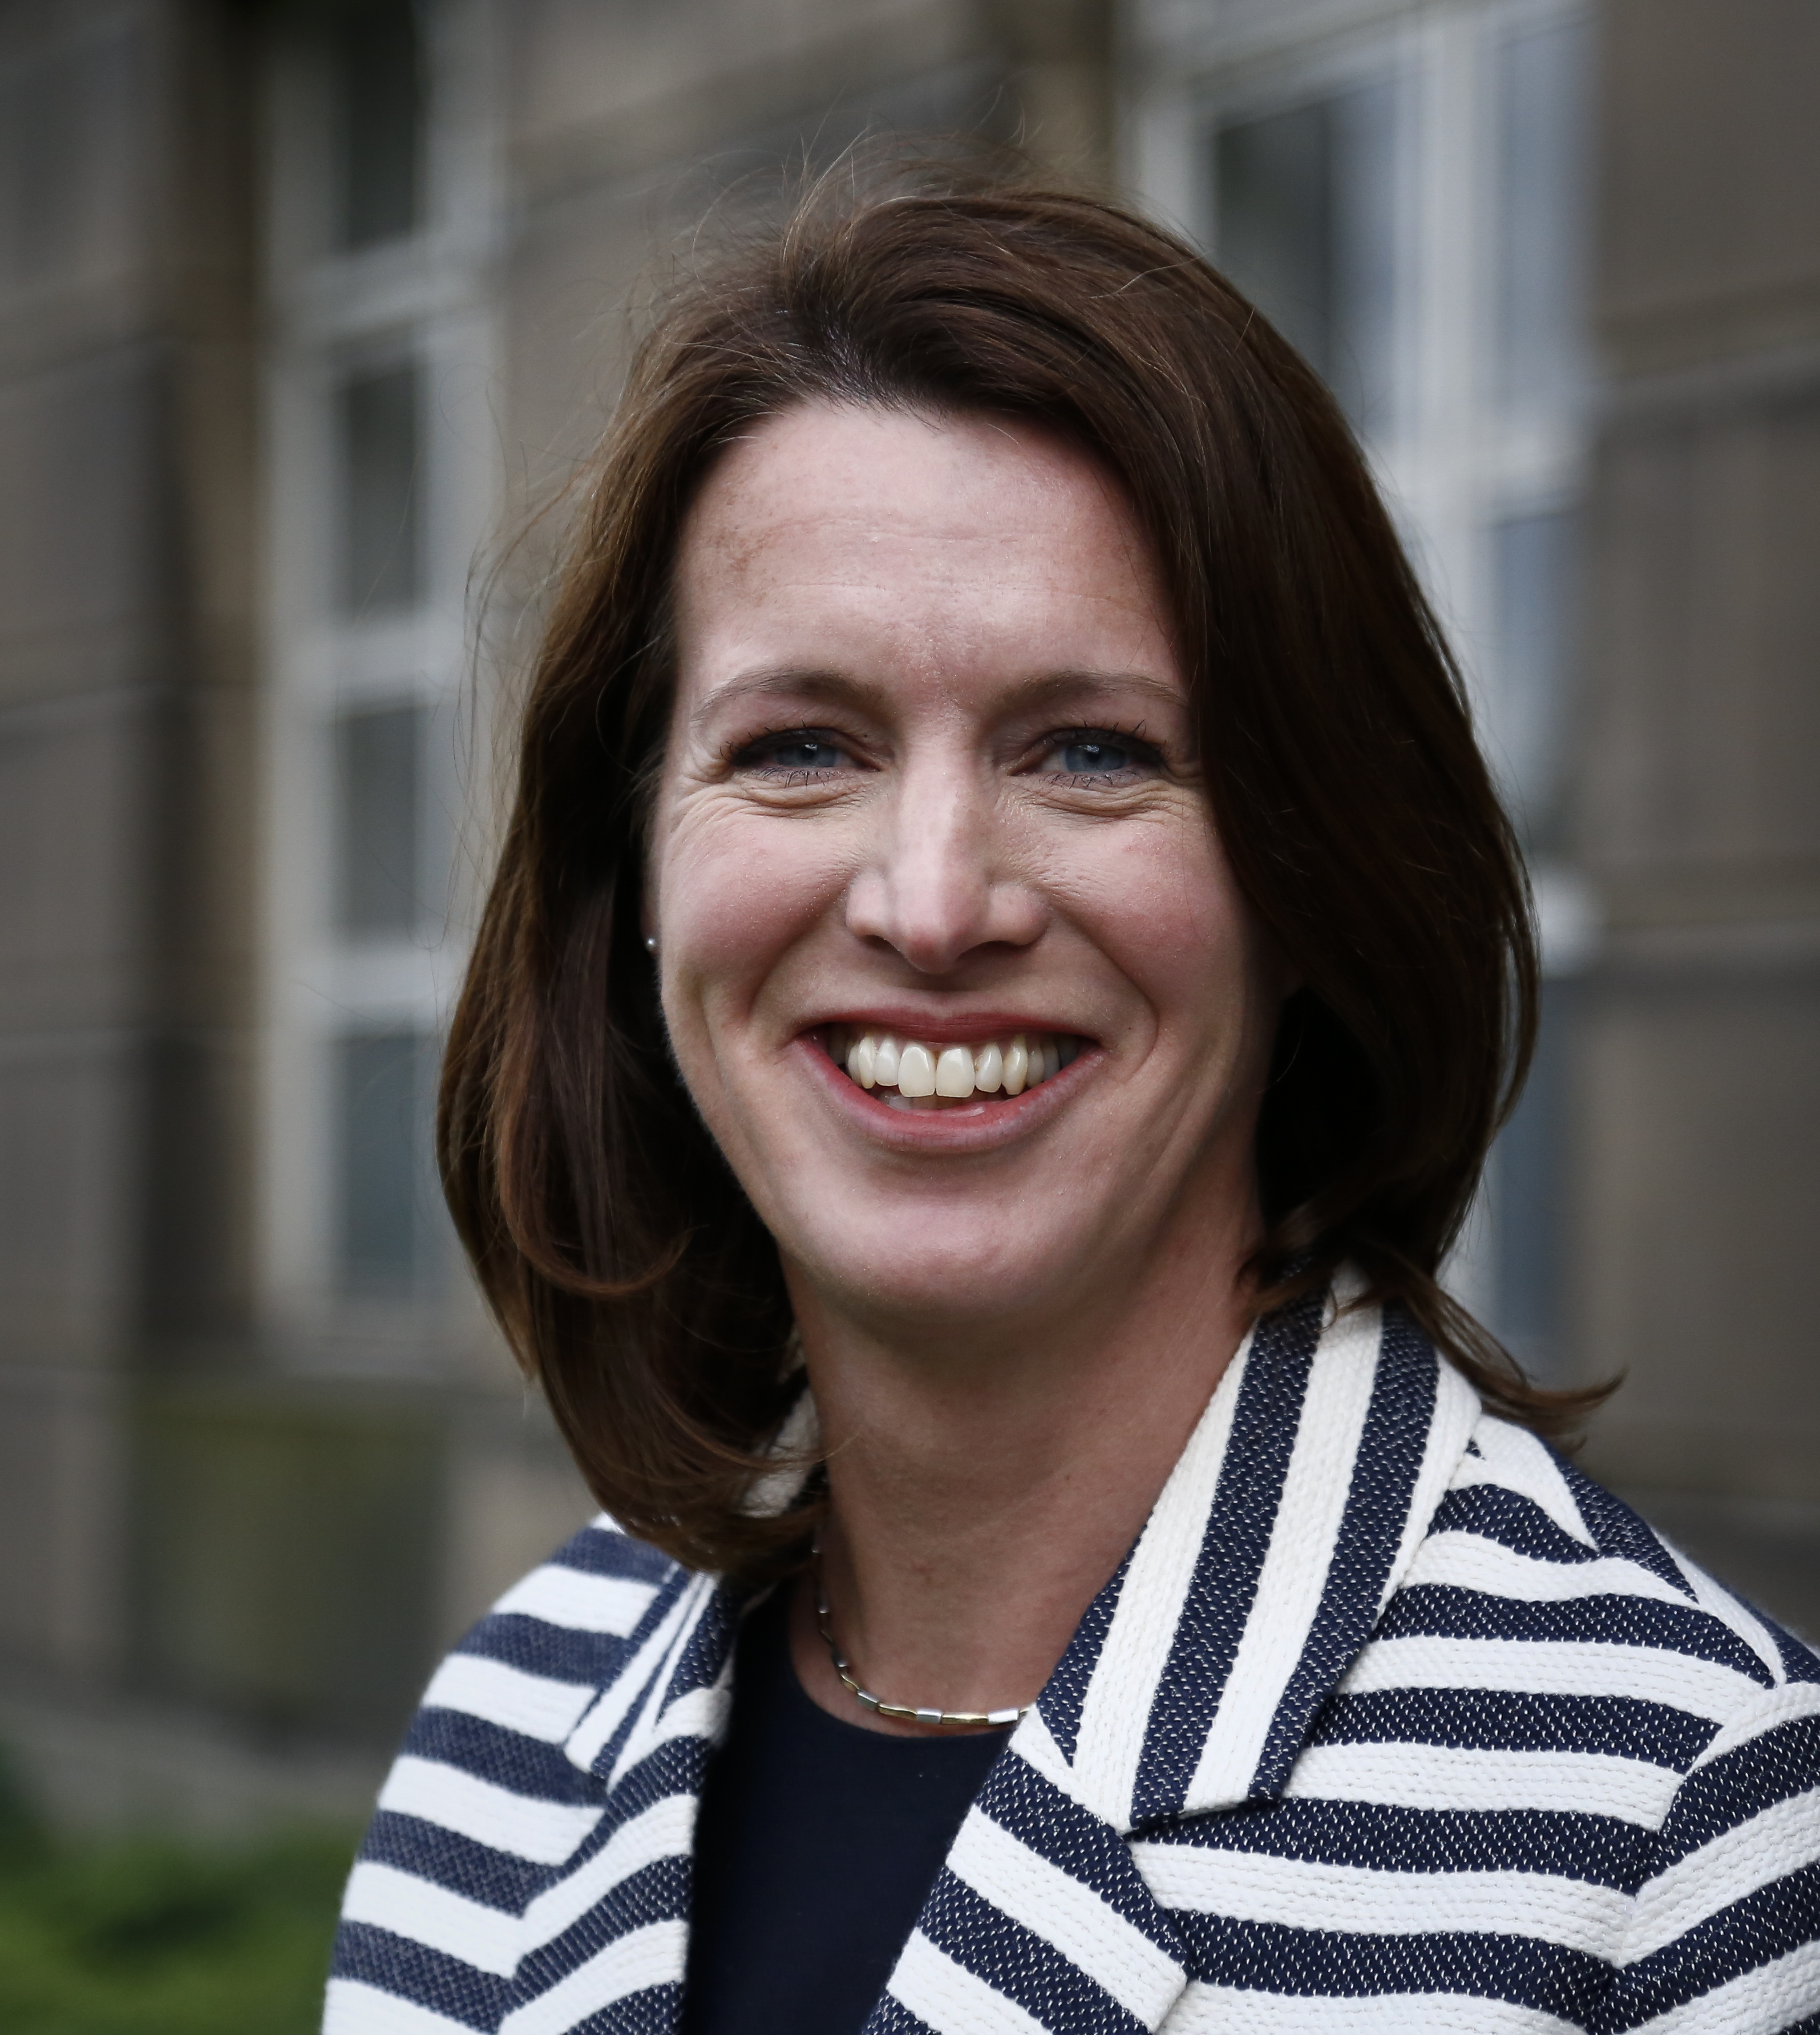 Dr Catherine Calderwood, Scotland's Chief Medical Officer